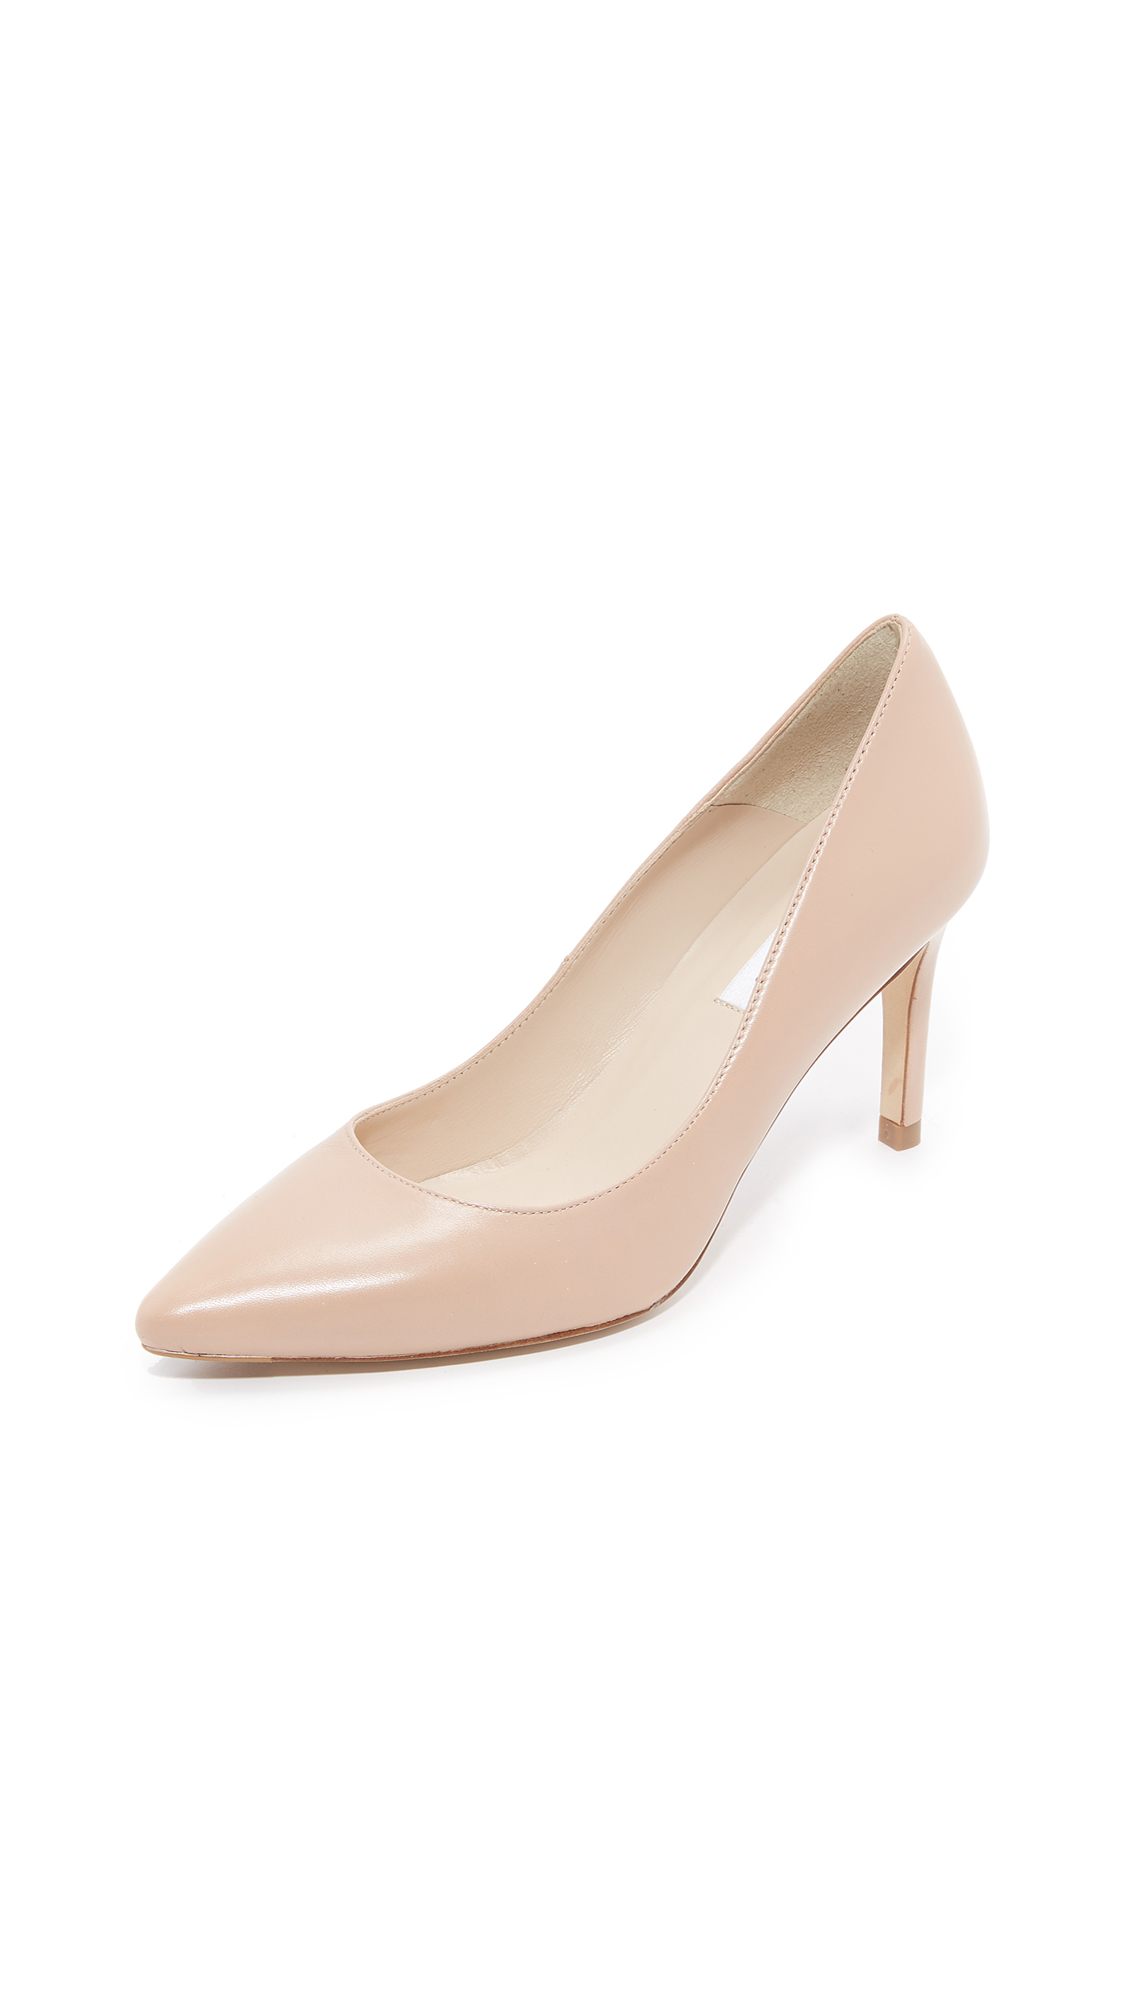 L.K. Bennett Florete Pumps - Trench Tan